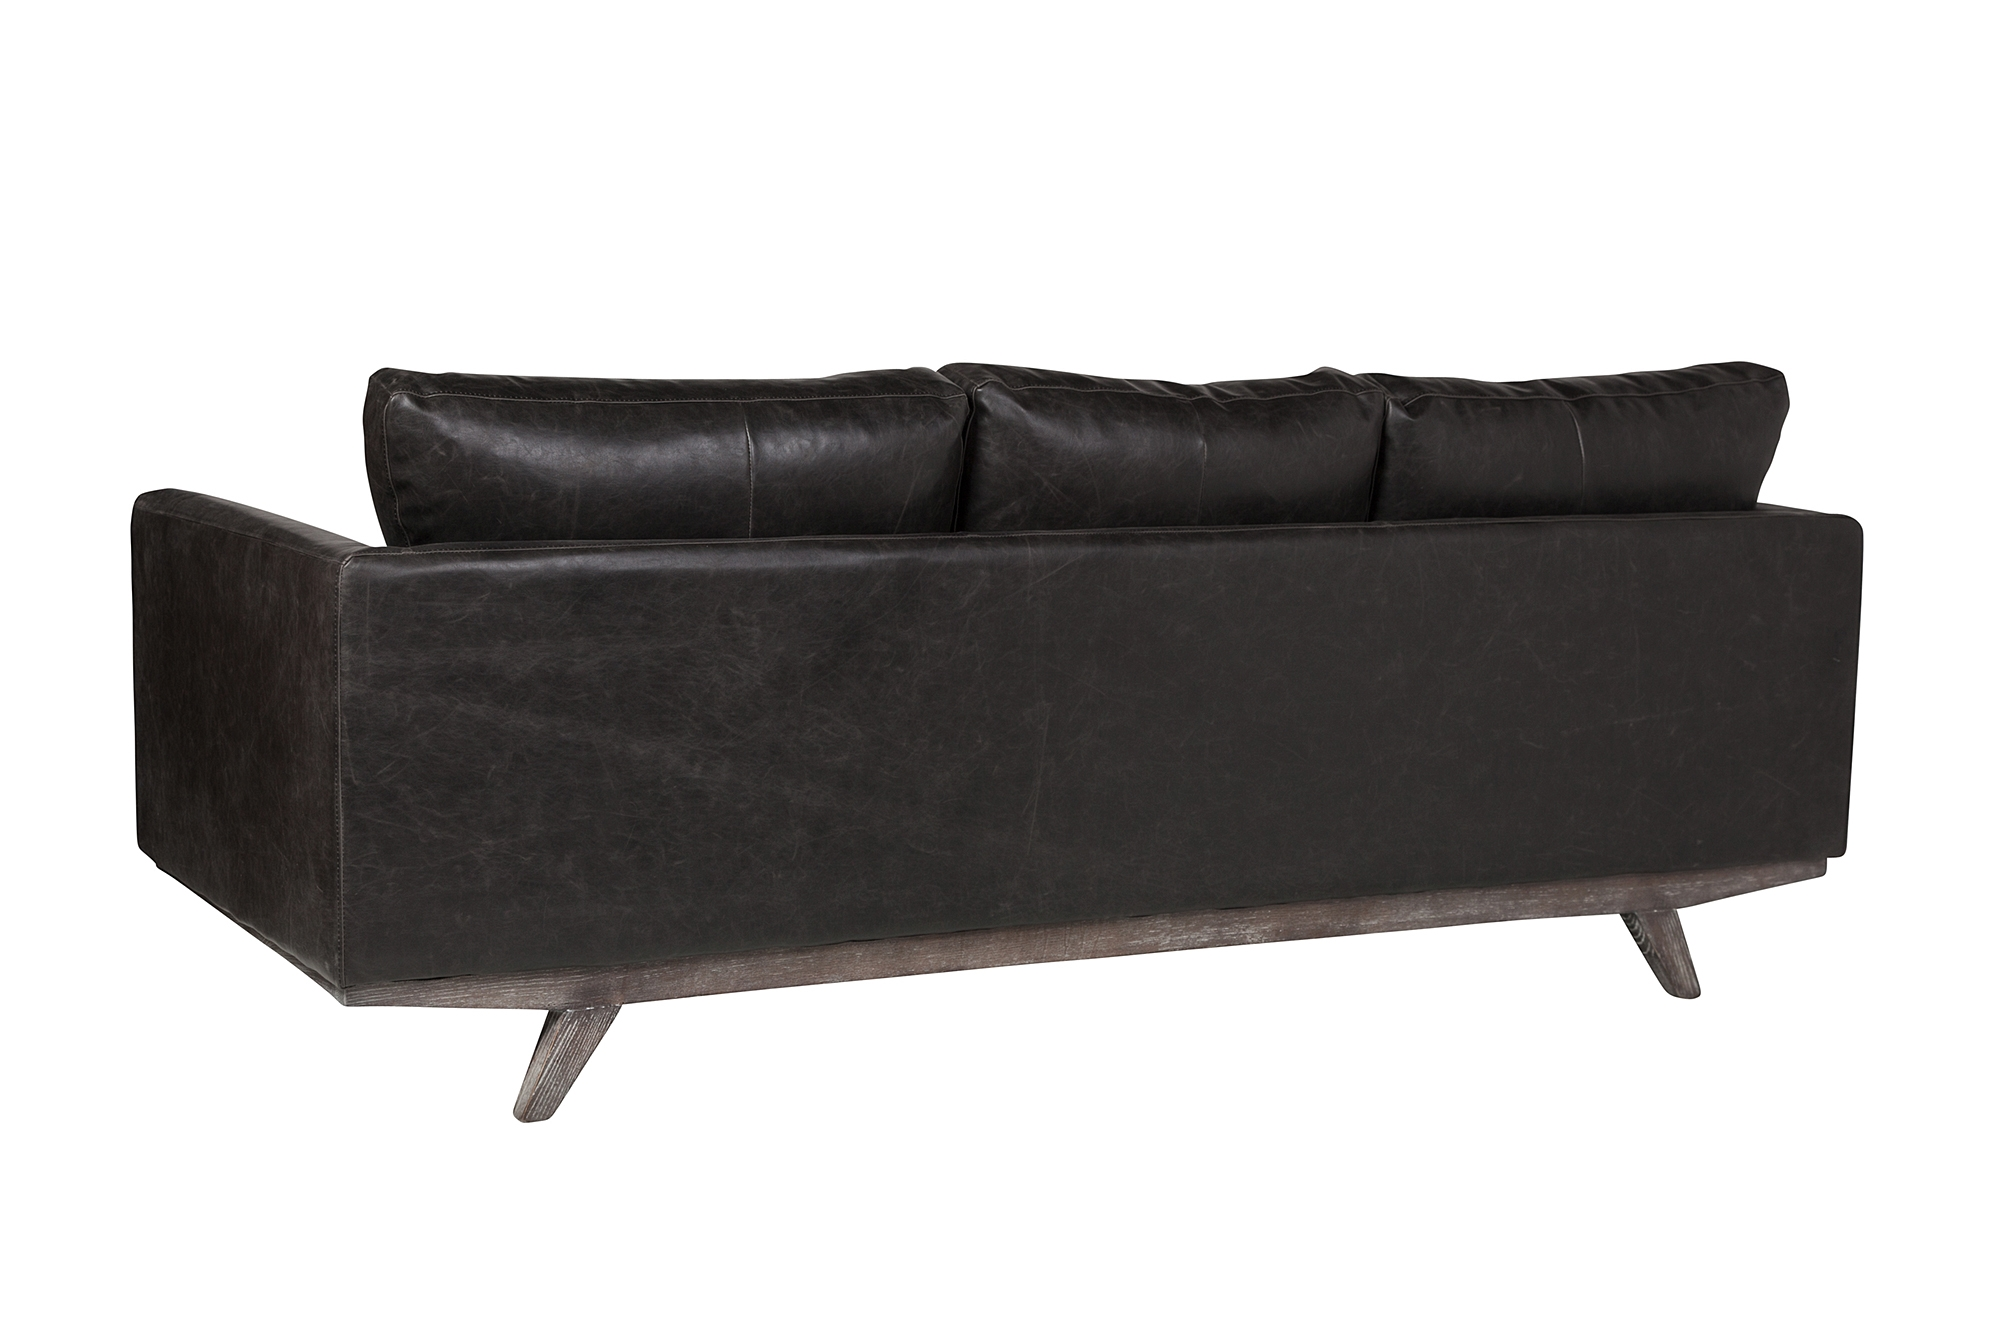 Maxwell 3 Seater Leather Sofa The Khazana Home Austin Furniture Store